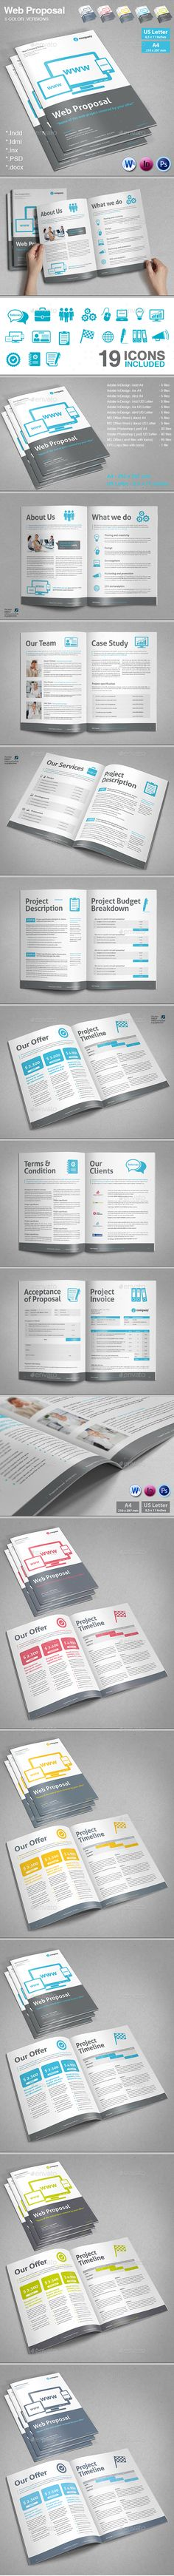 Web Design Project Proposal | Project proposal, Web design projects ...